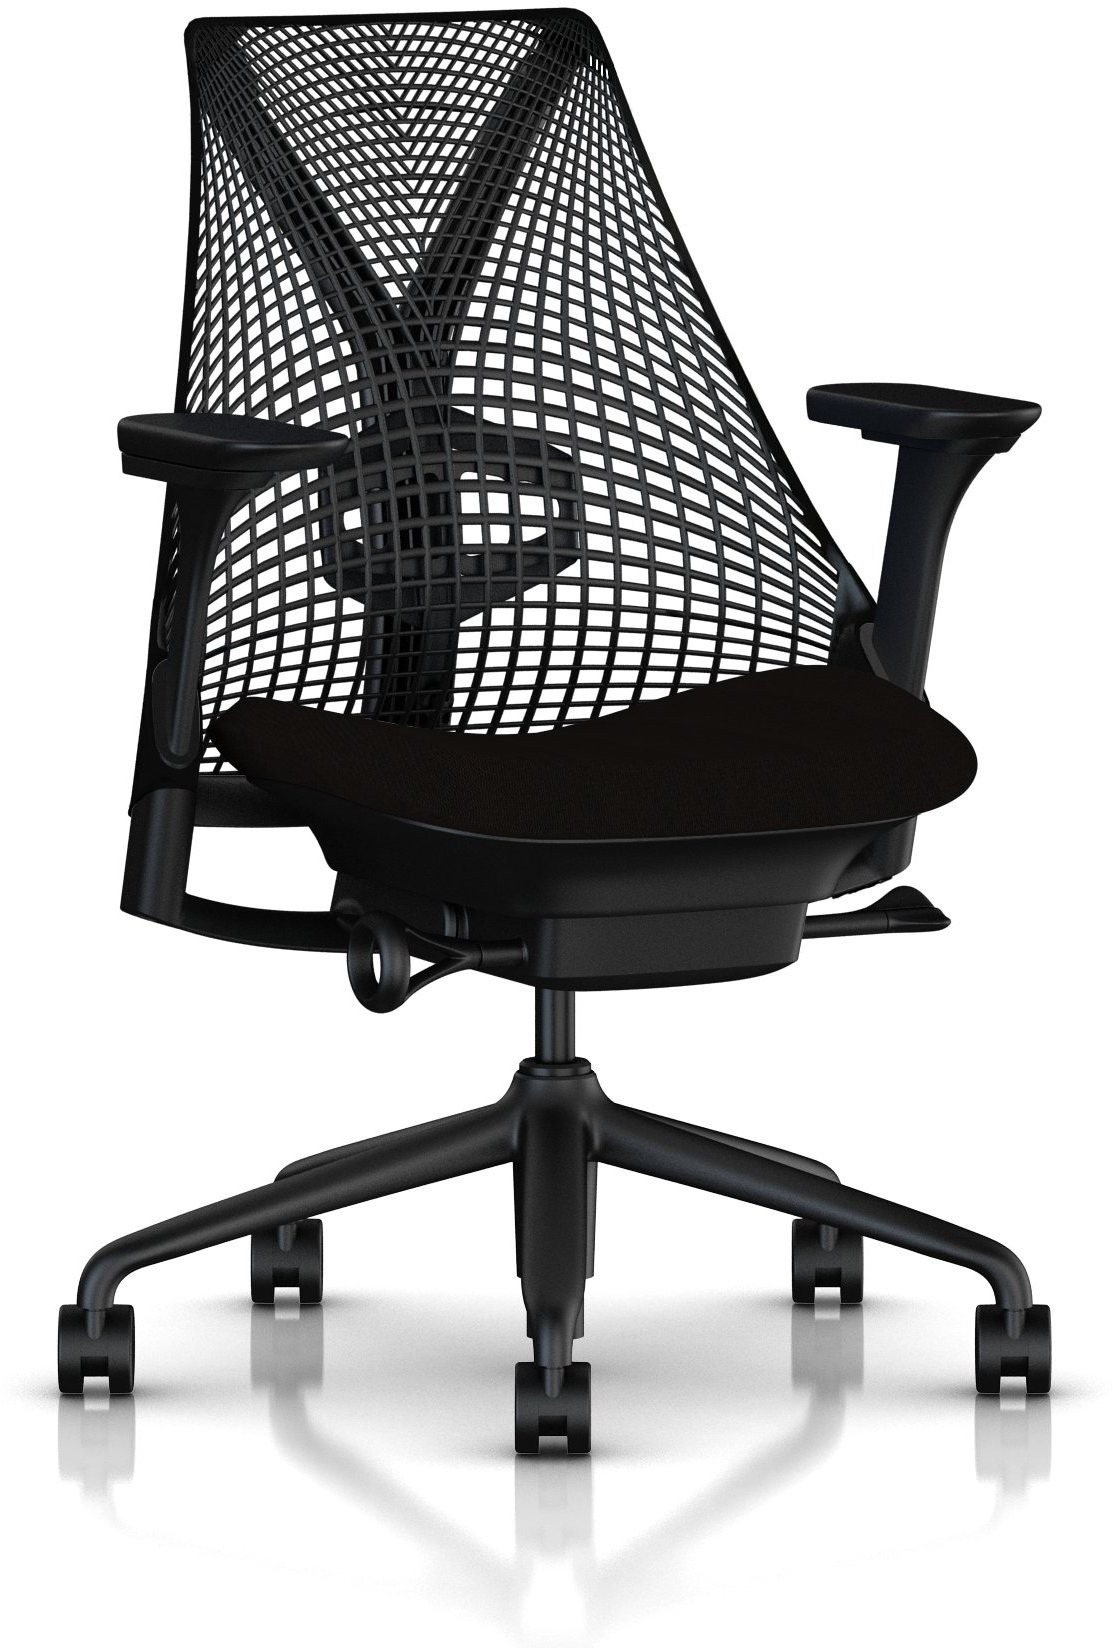 View HermanMiller Sayl with Fully adjustable arms : 3D Elastomer Strands Plastic Office Chair(Black) Furniture (HermanMiller)